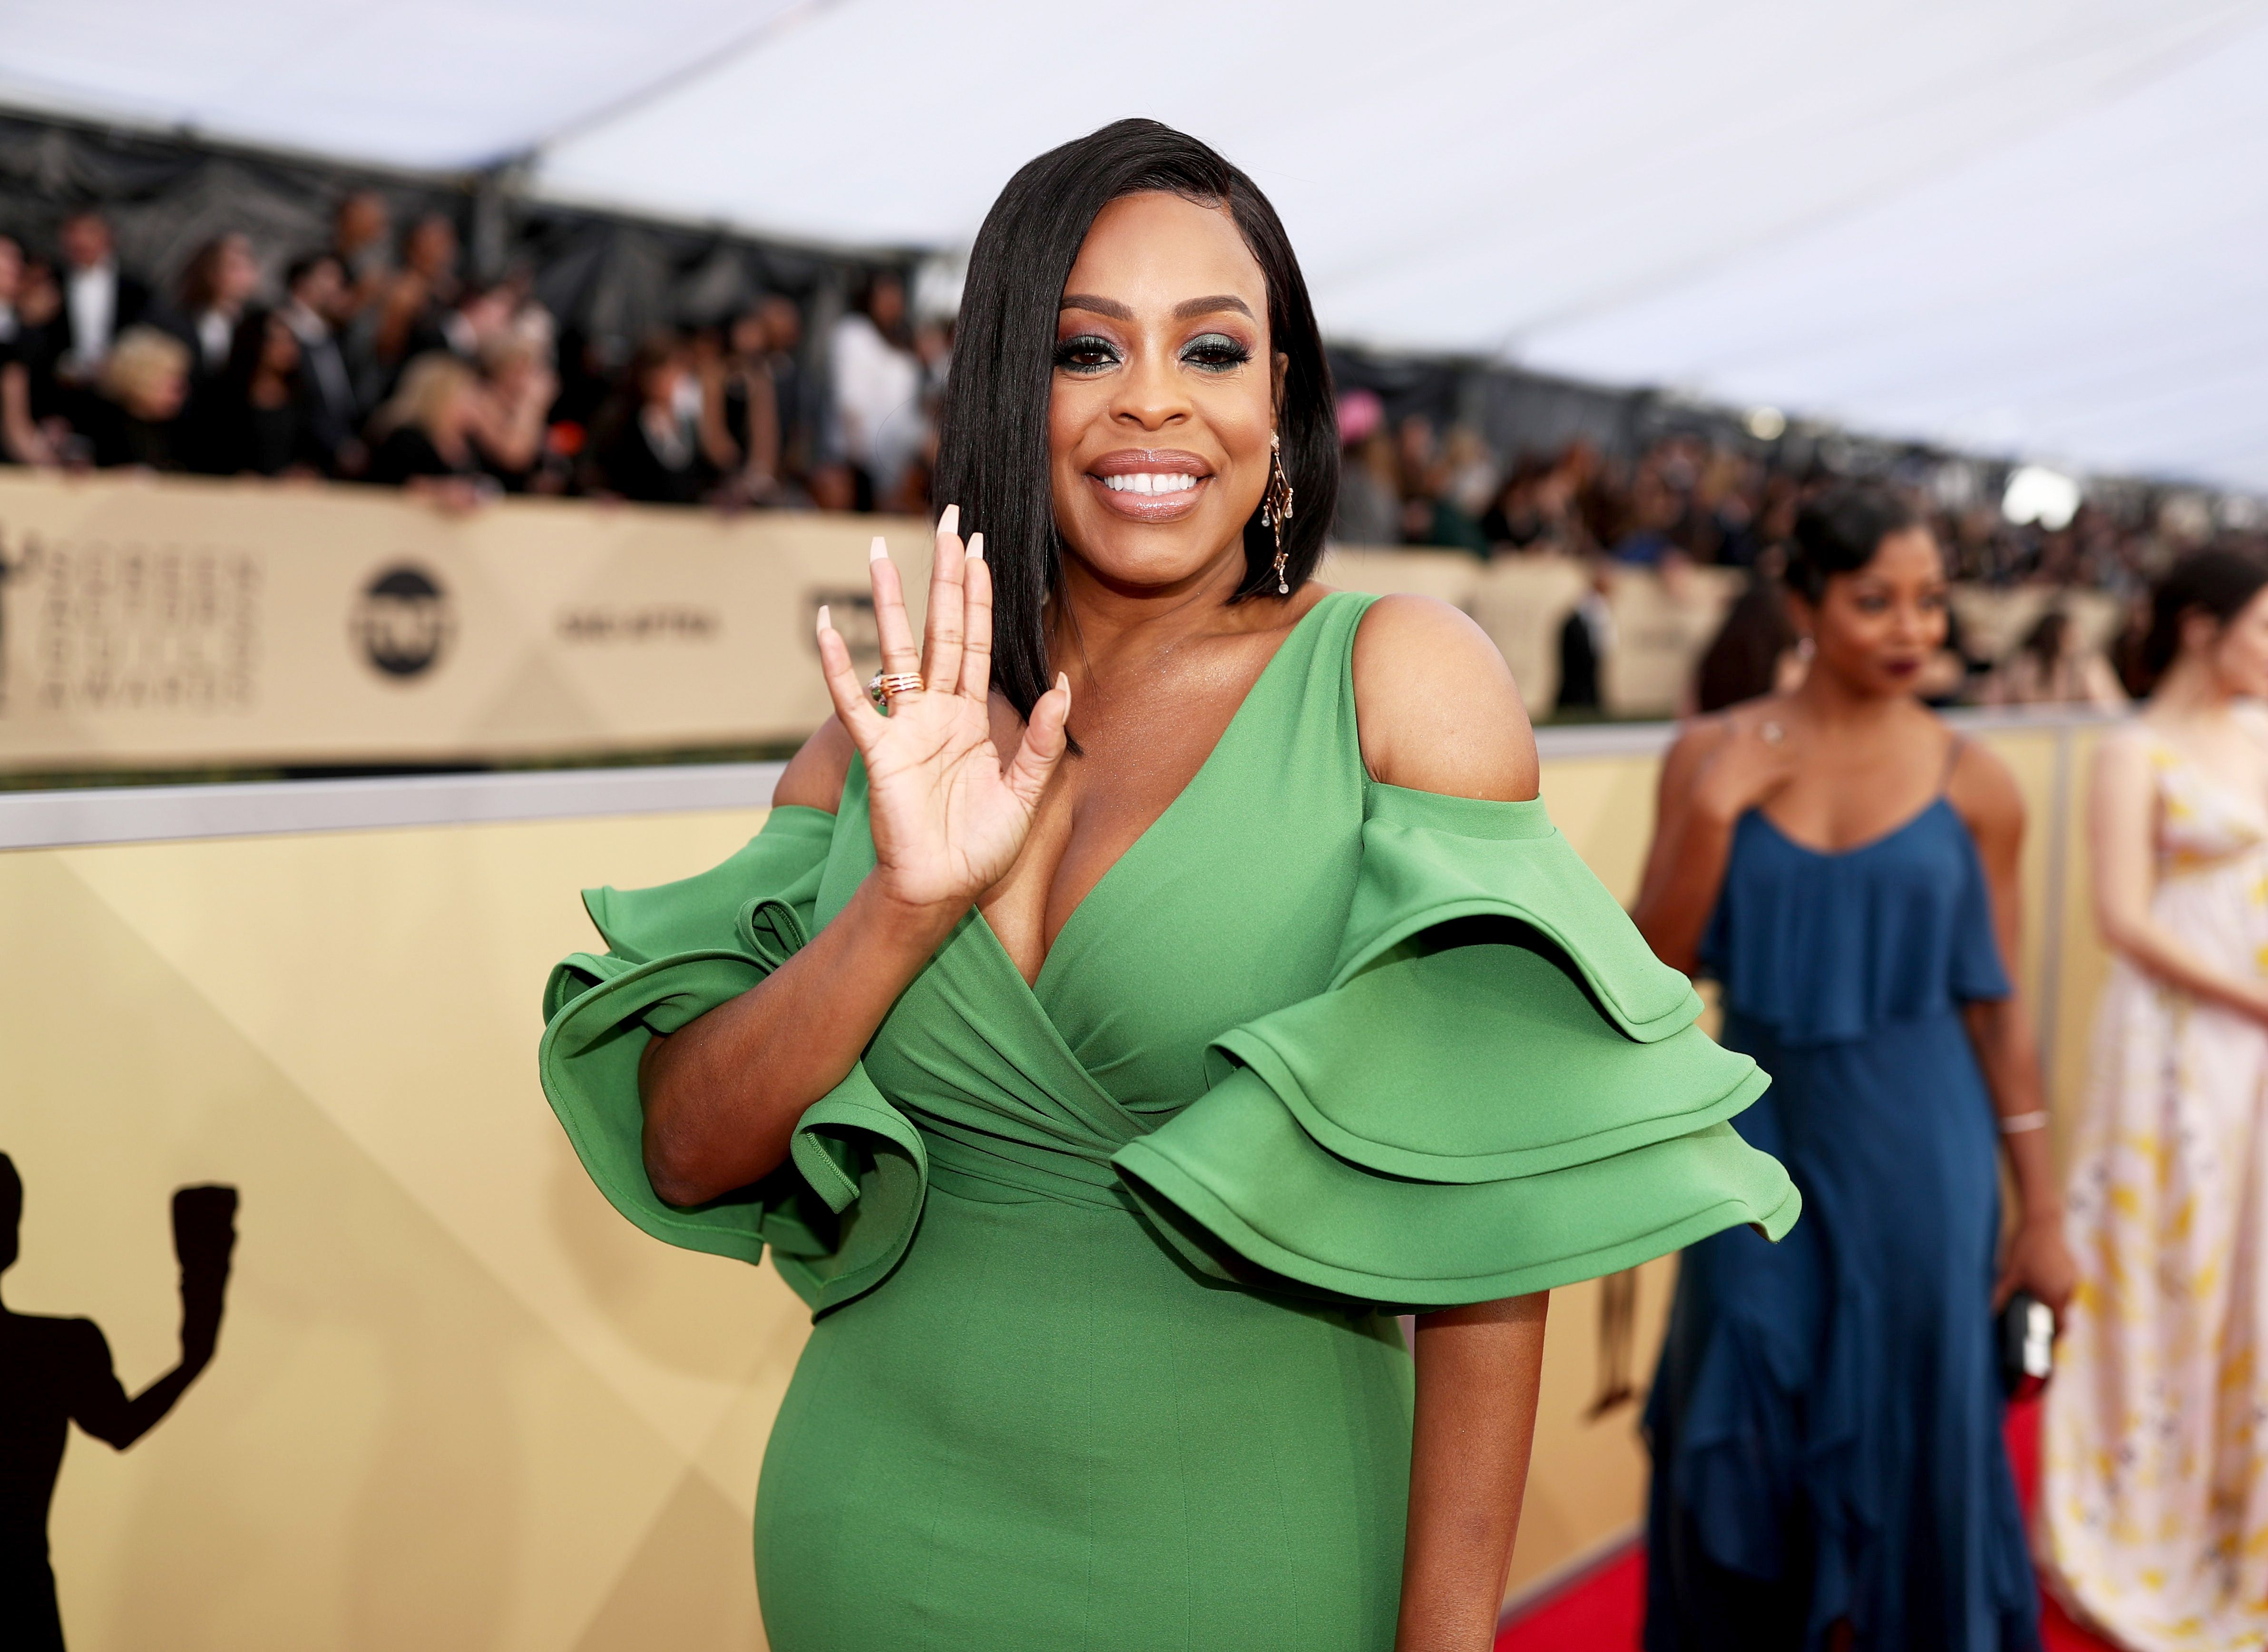 Niecy Nash at the 24th Annual Screen Actors Guild Awards on January 21, 2018 in Los Angeles, California | Photo: Getty Images